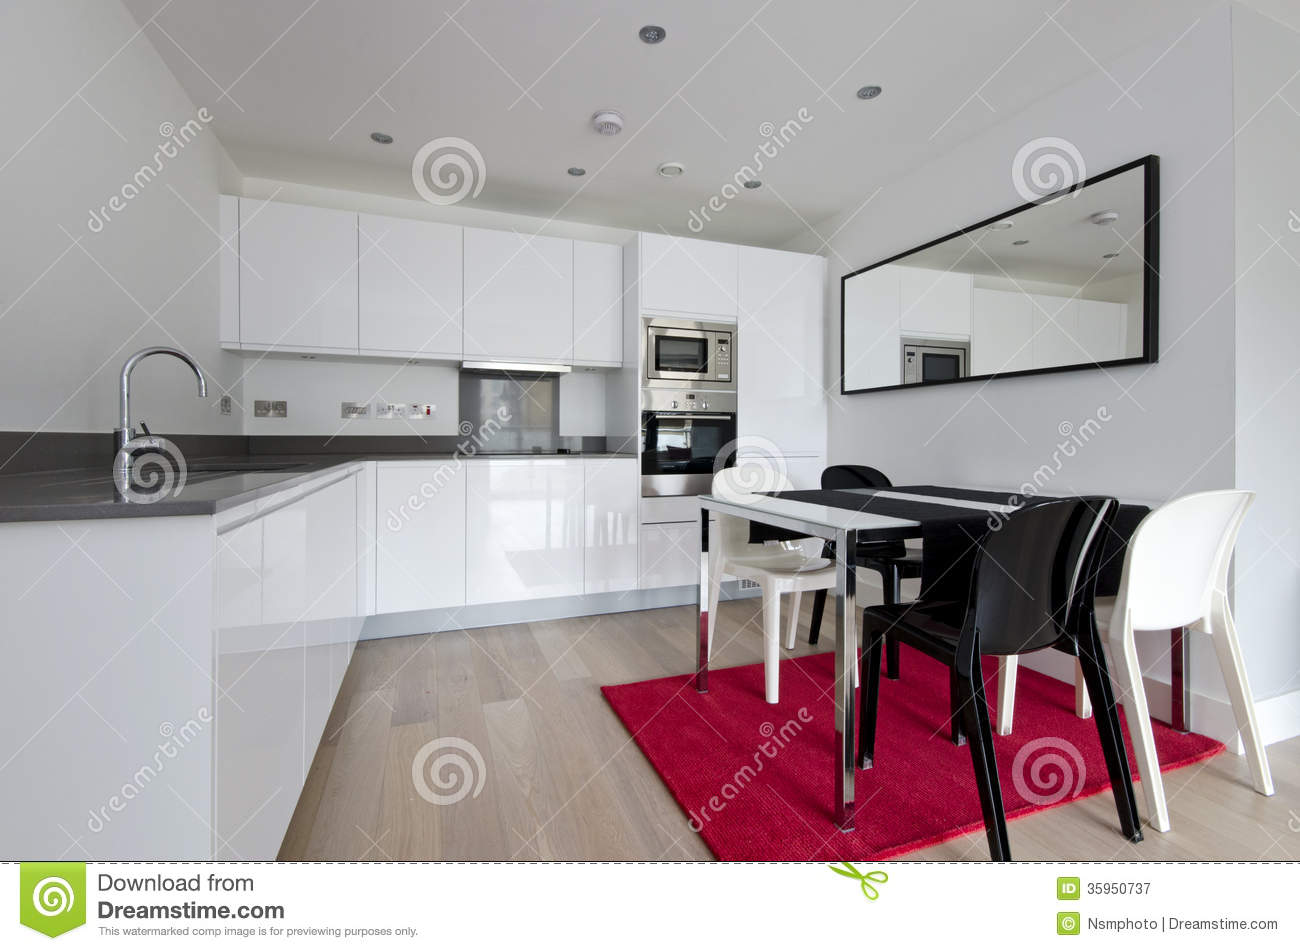 kitchen chairs modern small table and for uk contemporary fully fitted in white royalty free stock photography - image: 35950737